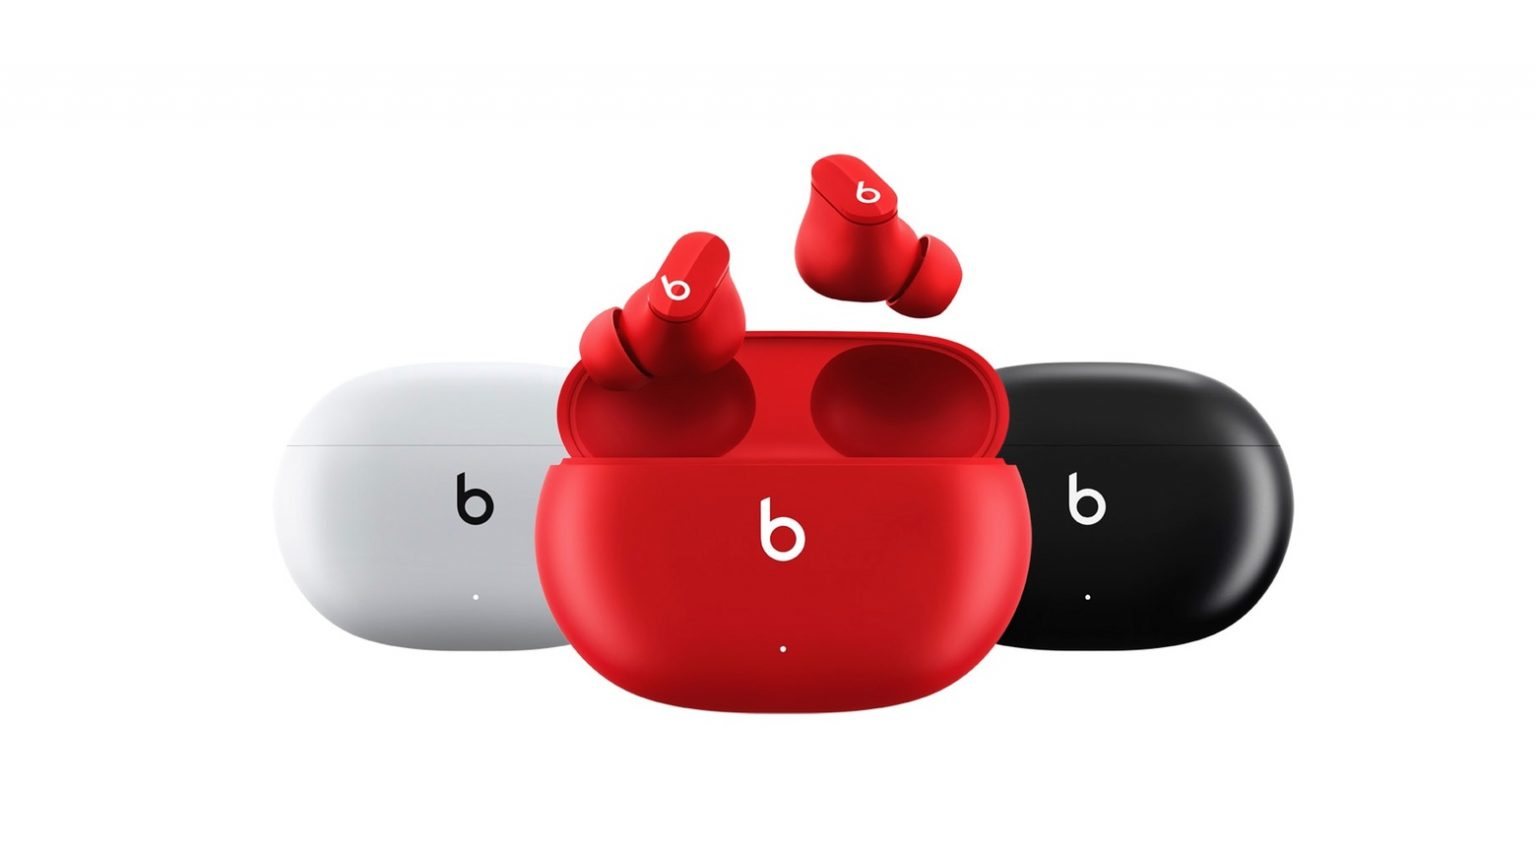 Beats Studio Buds come in white, red and black.